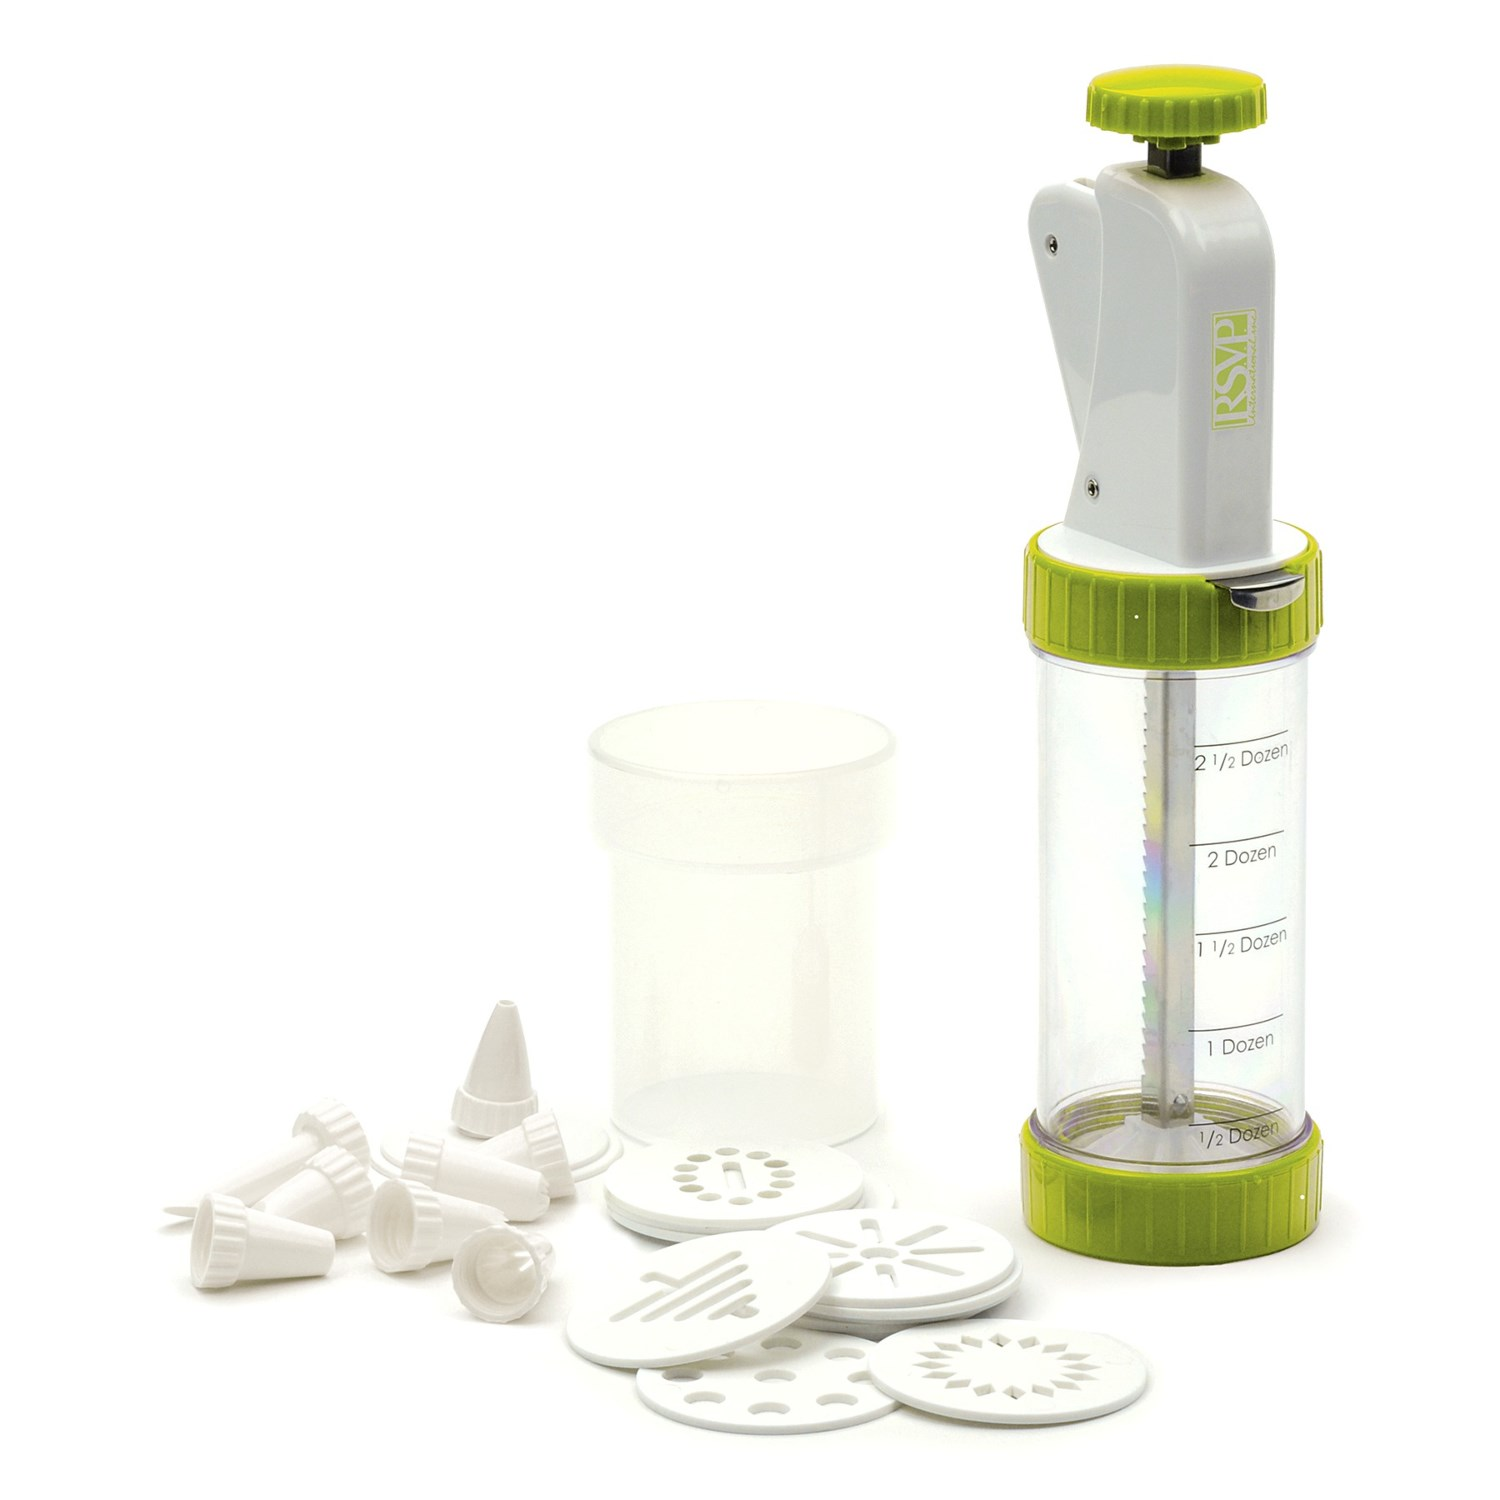 Rsvp international cookie press plus with discs and for Decor products international